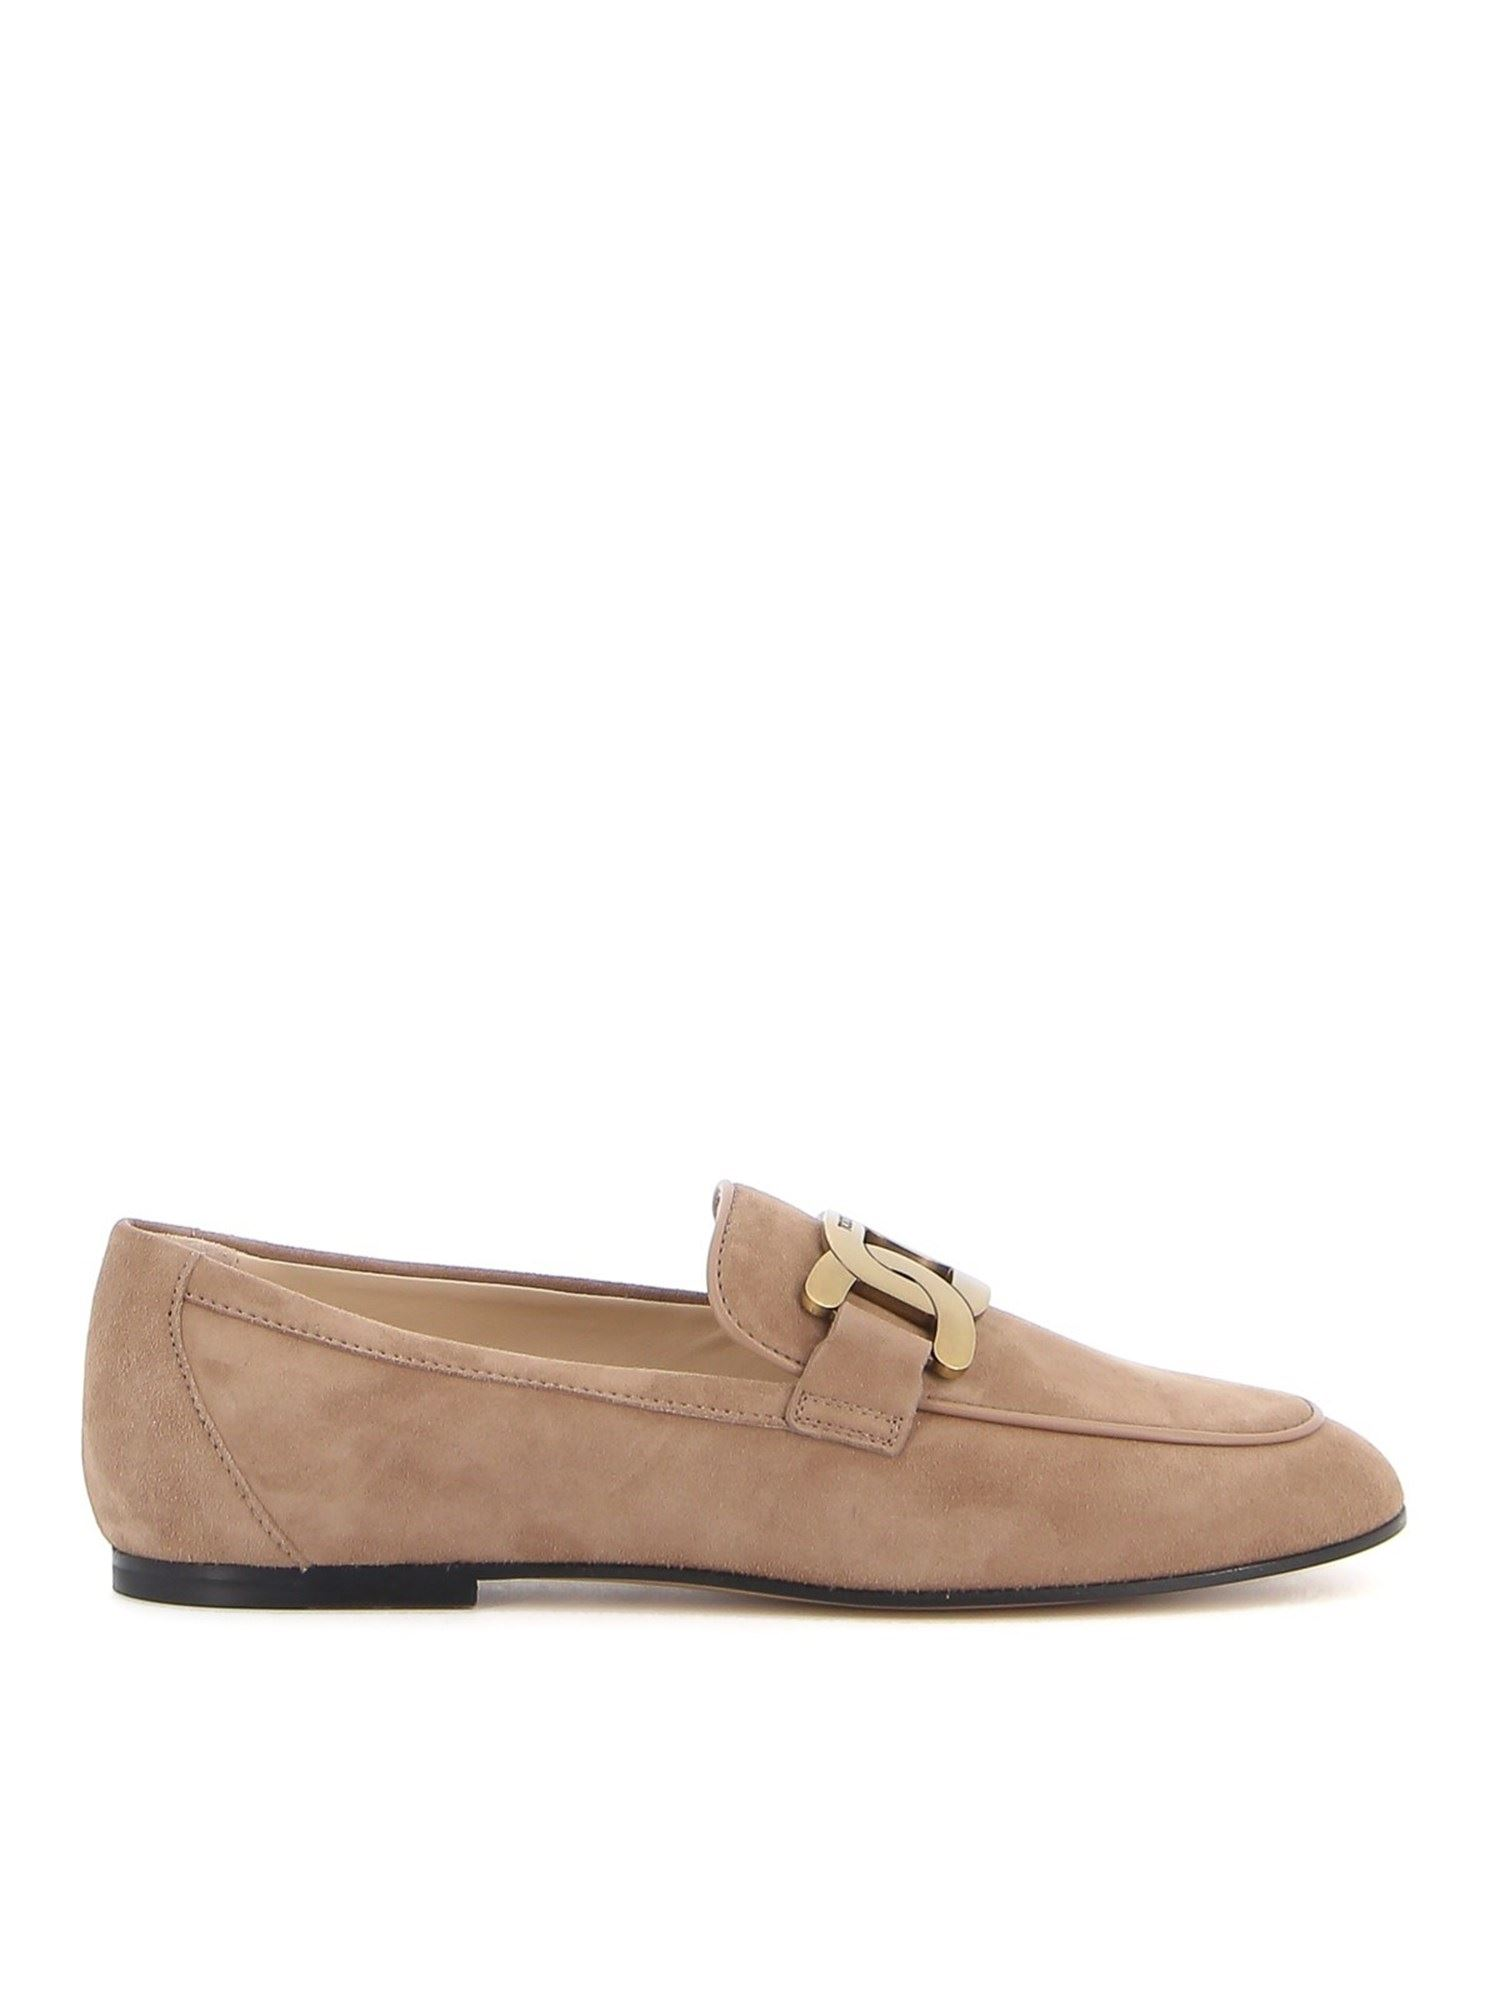 Tod's Suedes KATE SUEDE LOAFERS IN CAPPUCCINO COLOR